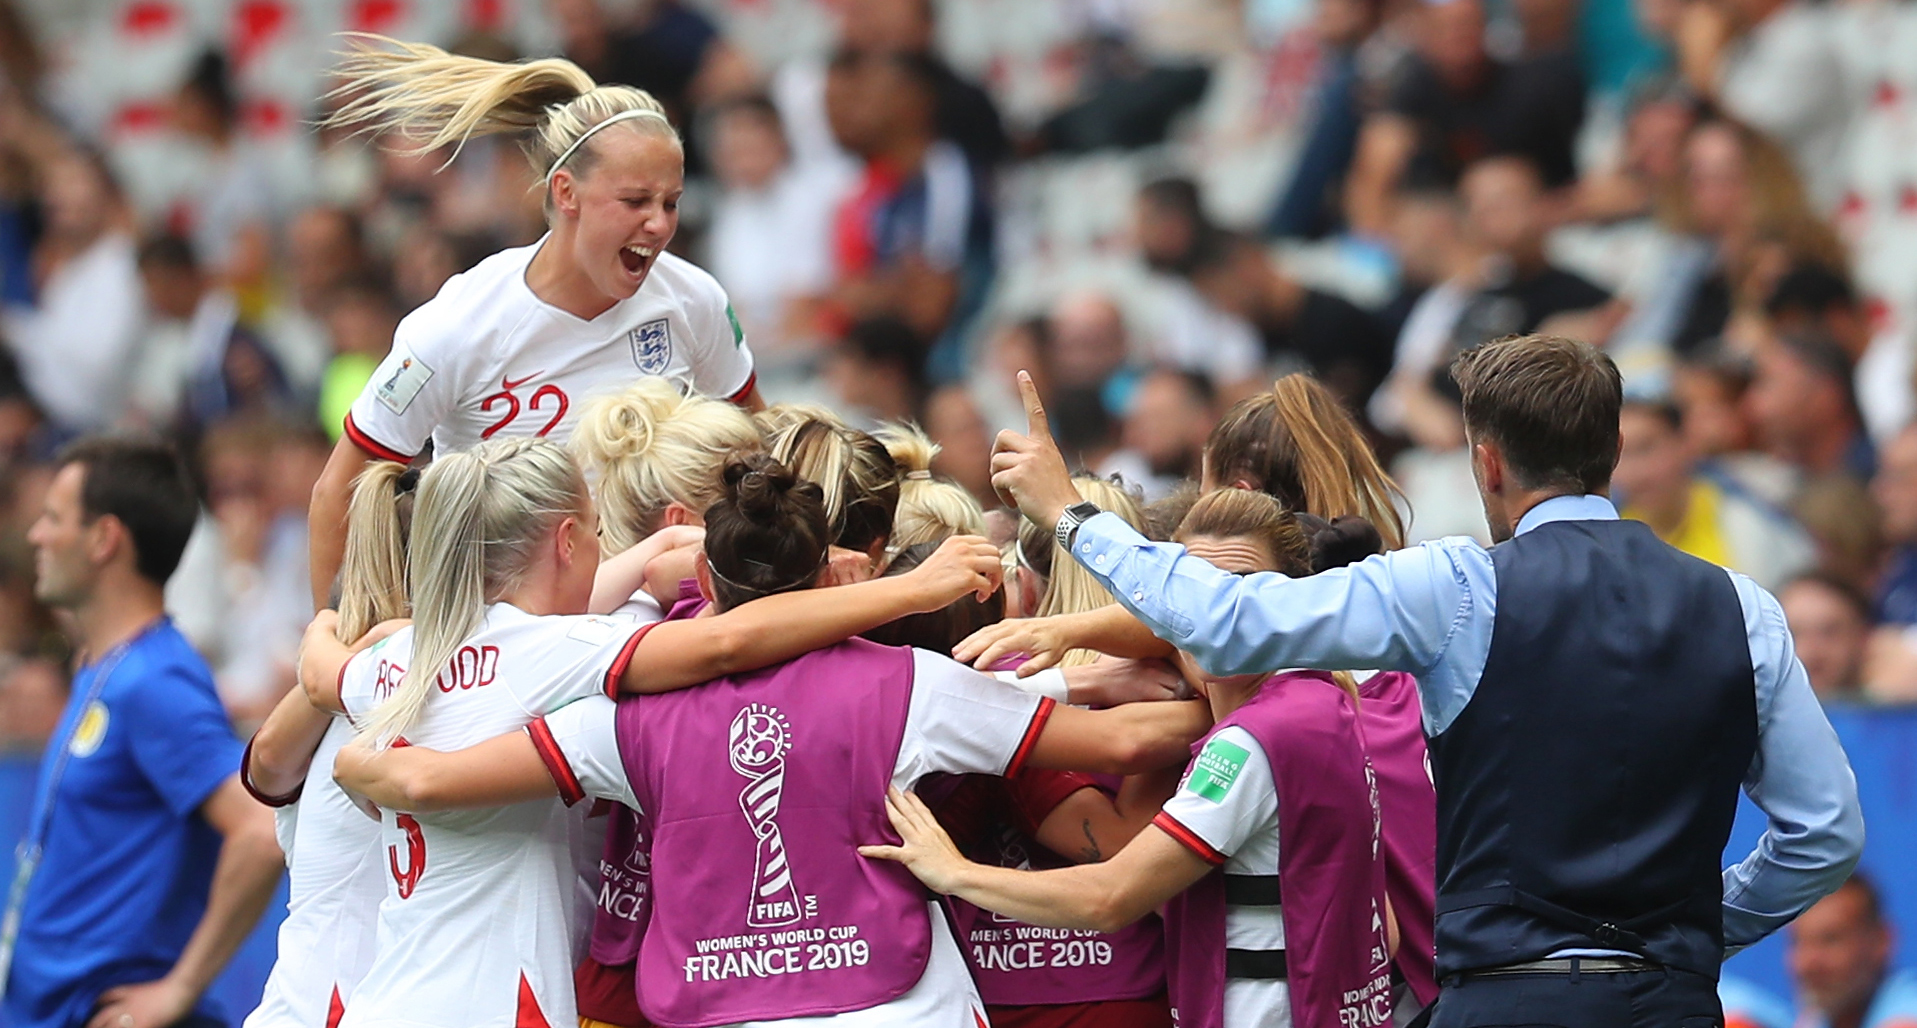 England Women v Scotland Women2019 FIFA Women's World Cup